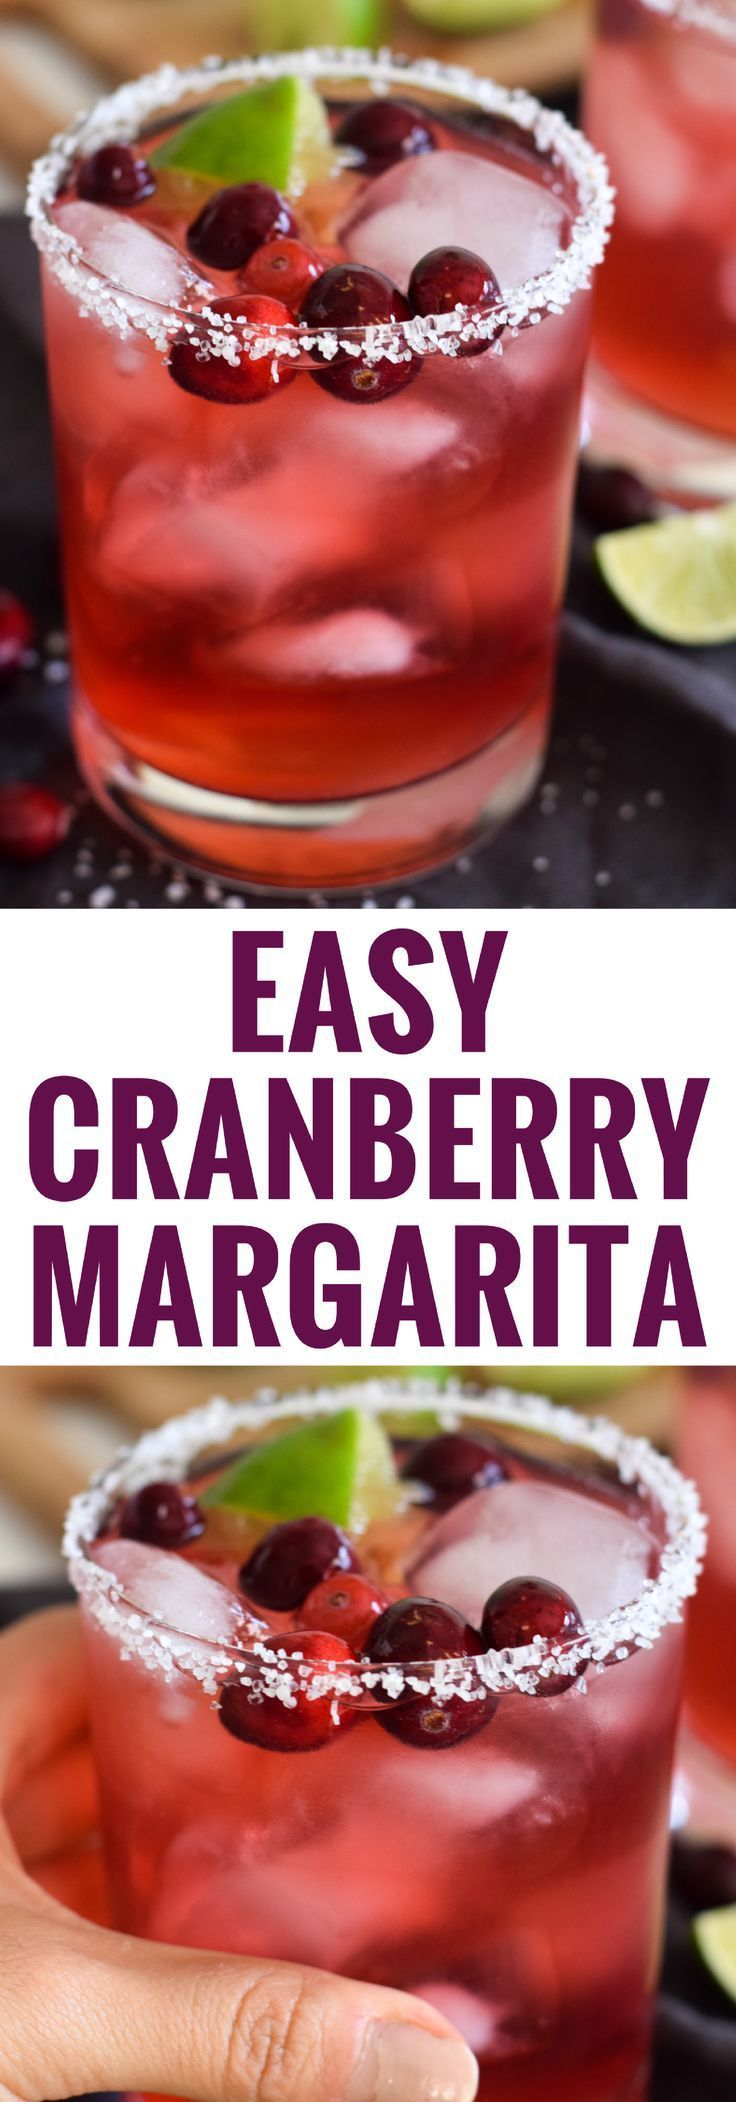 Tis The Season To Think Of These Things Https Www Pinterest Com Pin 329466528974733749 Cranberry Margarita New Year S Drinks Christmas Party Food